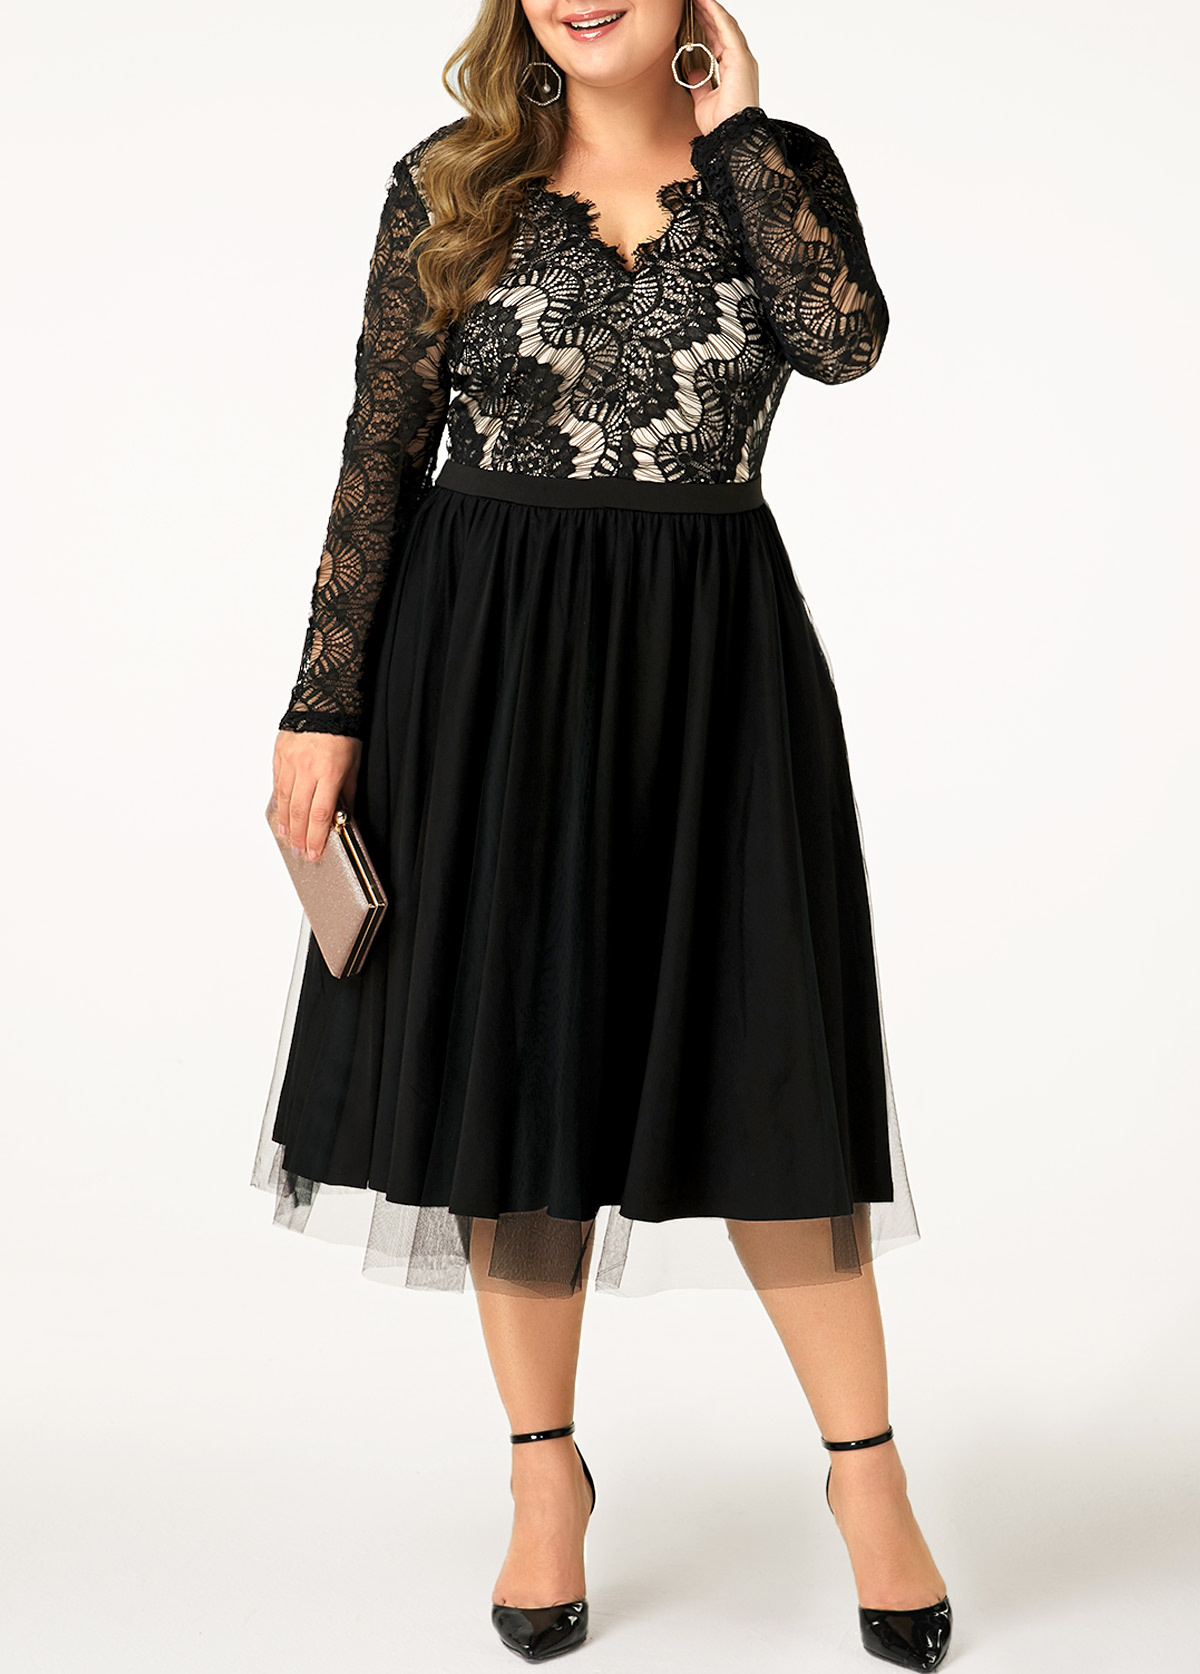 Lace Panel Plus Size Back Zipper Dress